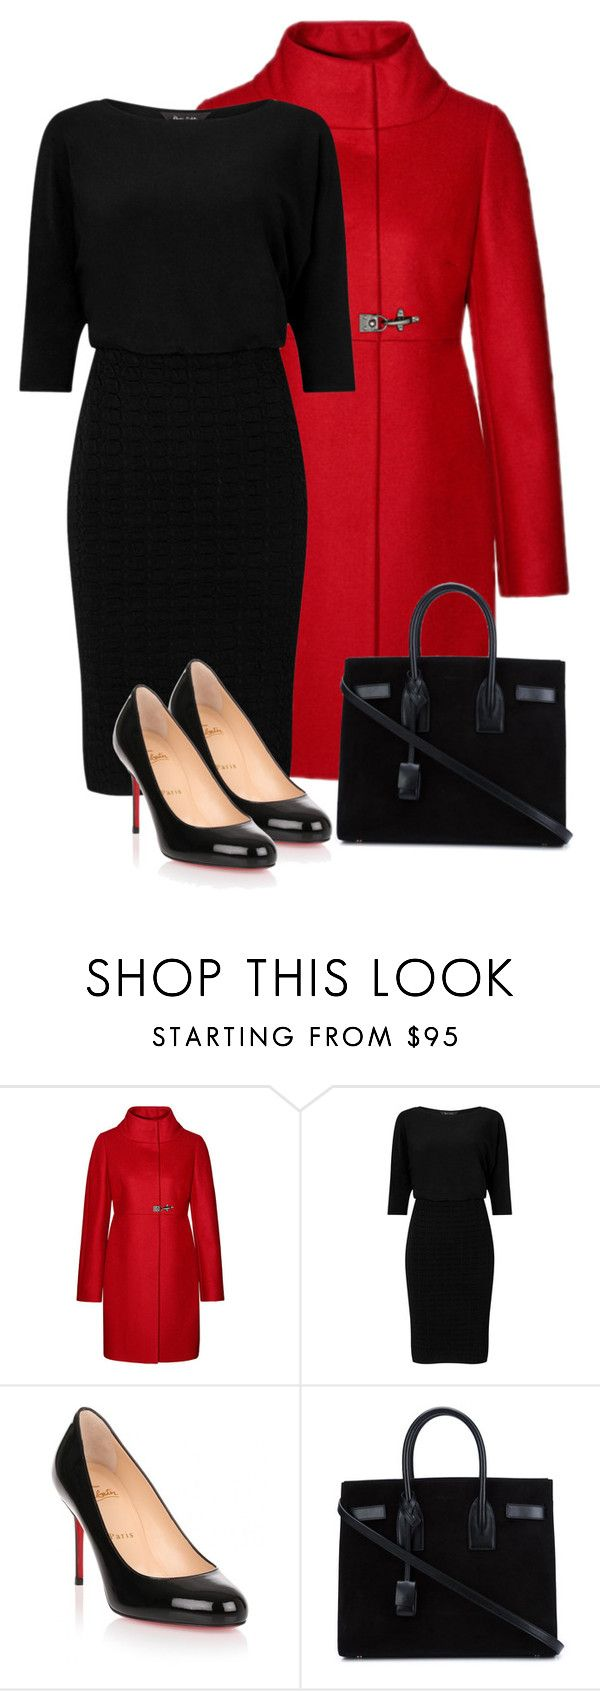 """""""Untitled 21"""" by havlova-blanka on Polyvore featuring FAY, Phase Eight, Christian Louboutin and Yves Saint Laurent"""